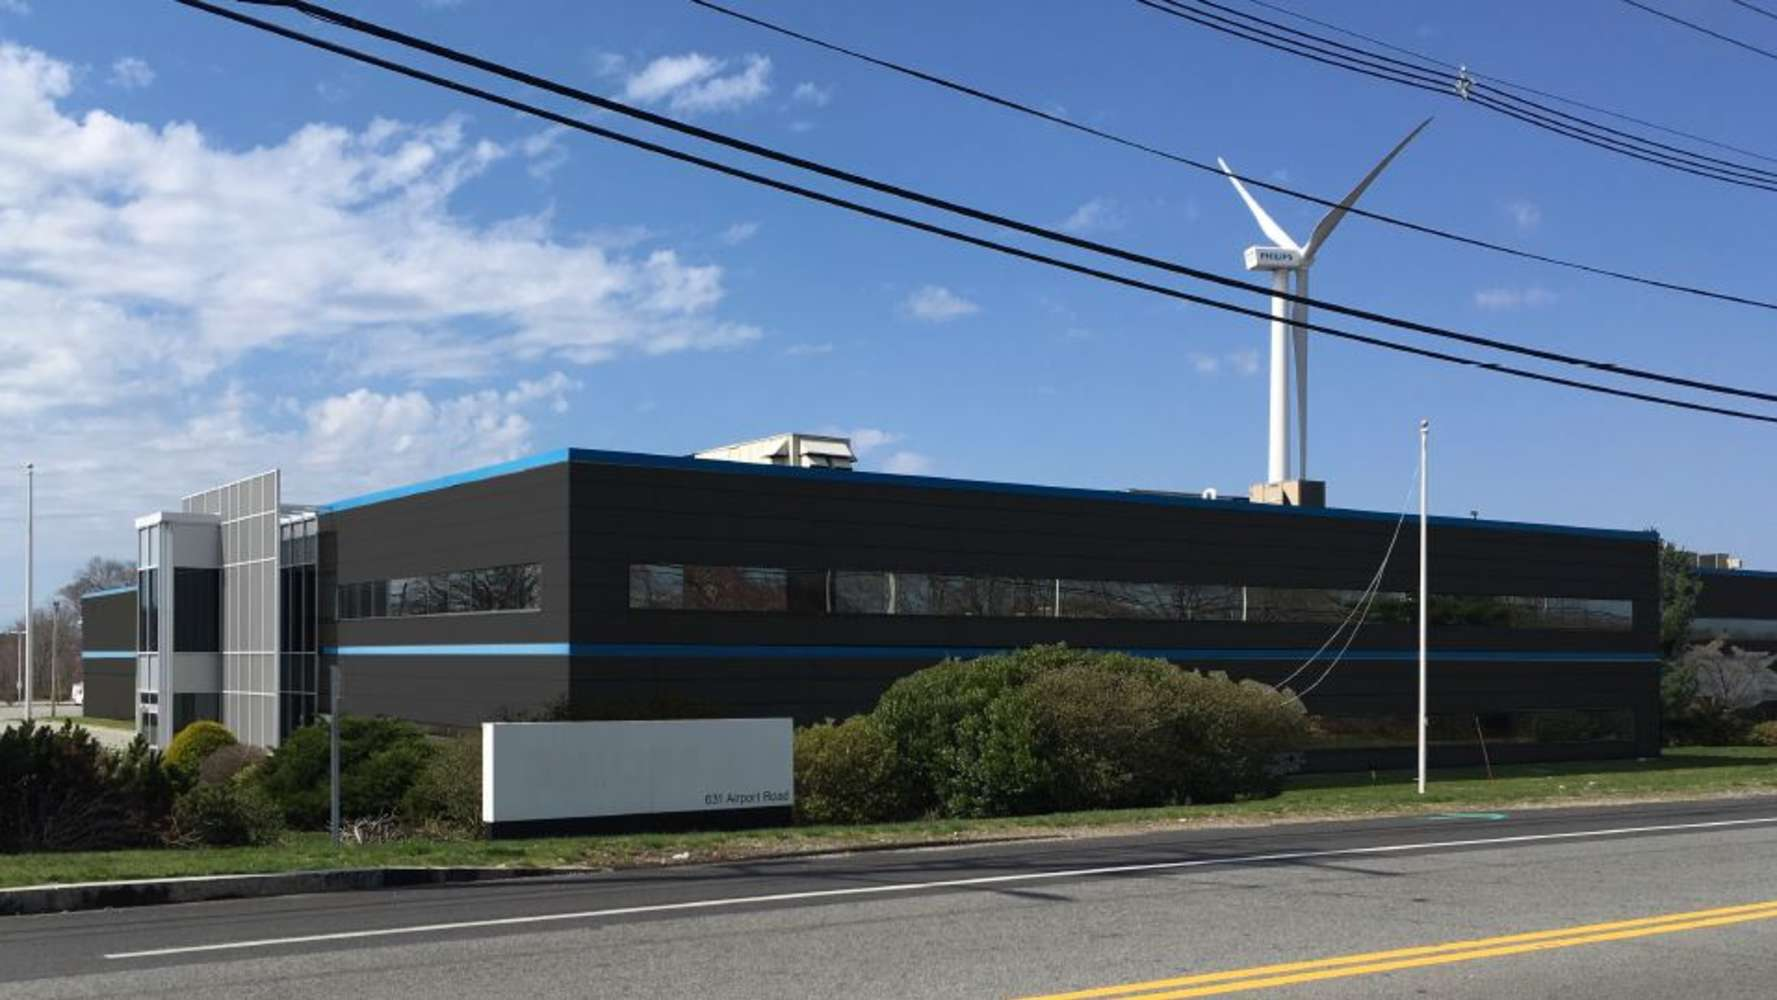 Industrial Fall river, 02720 - Lightolier Manufacturing Facility